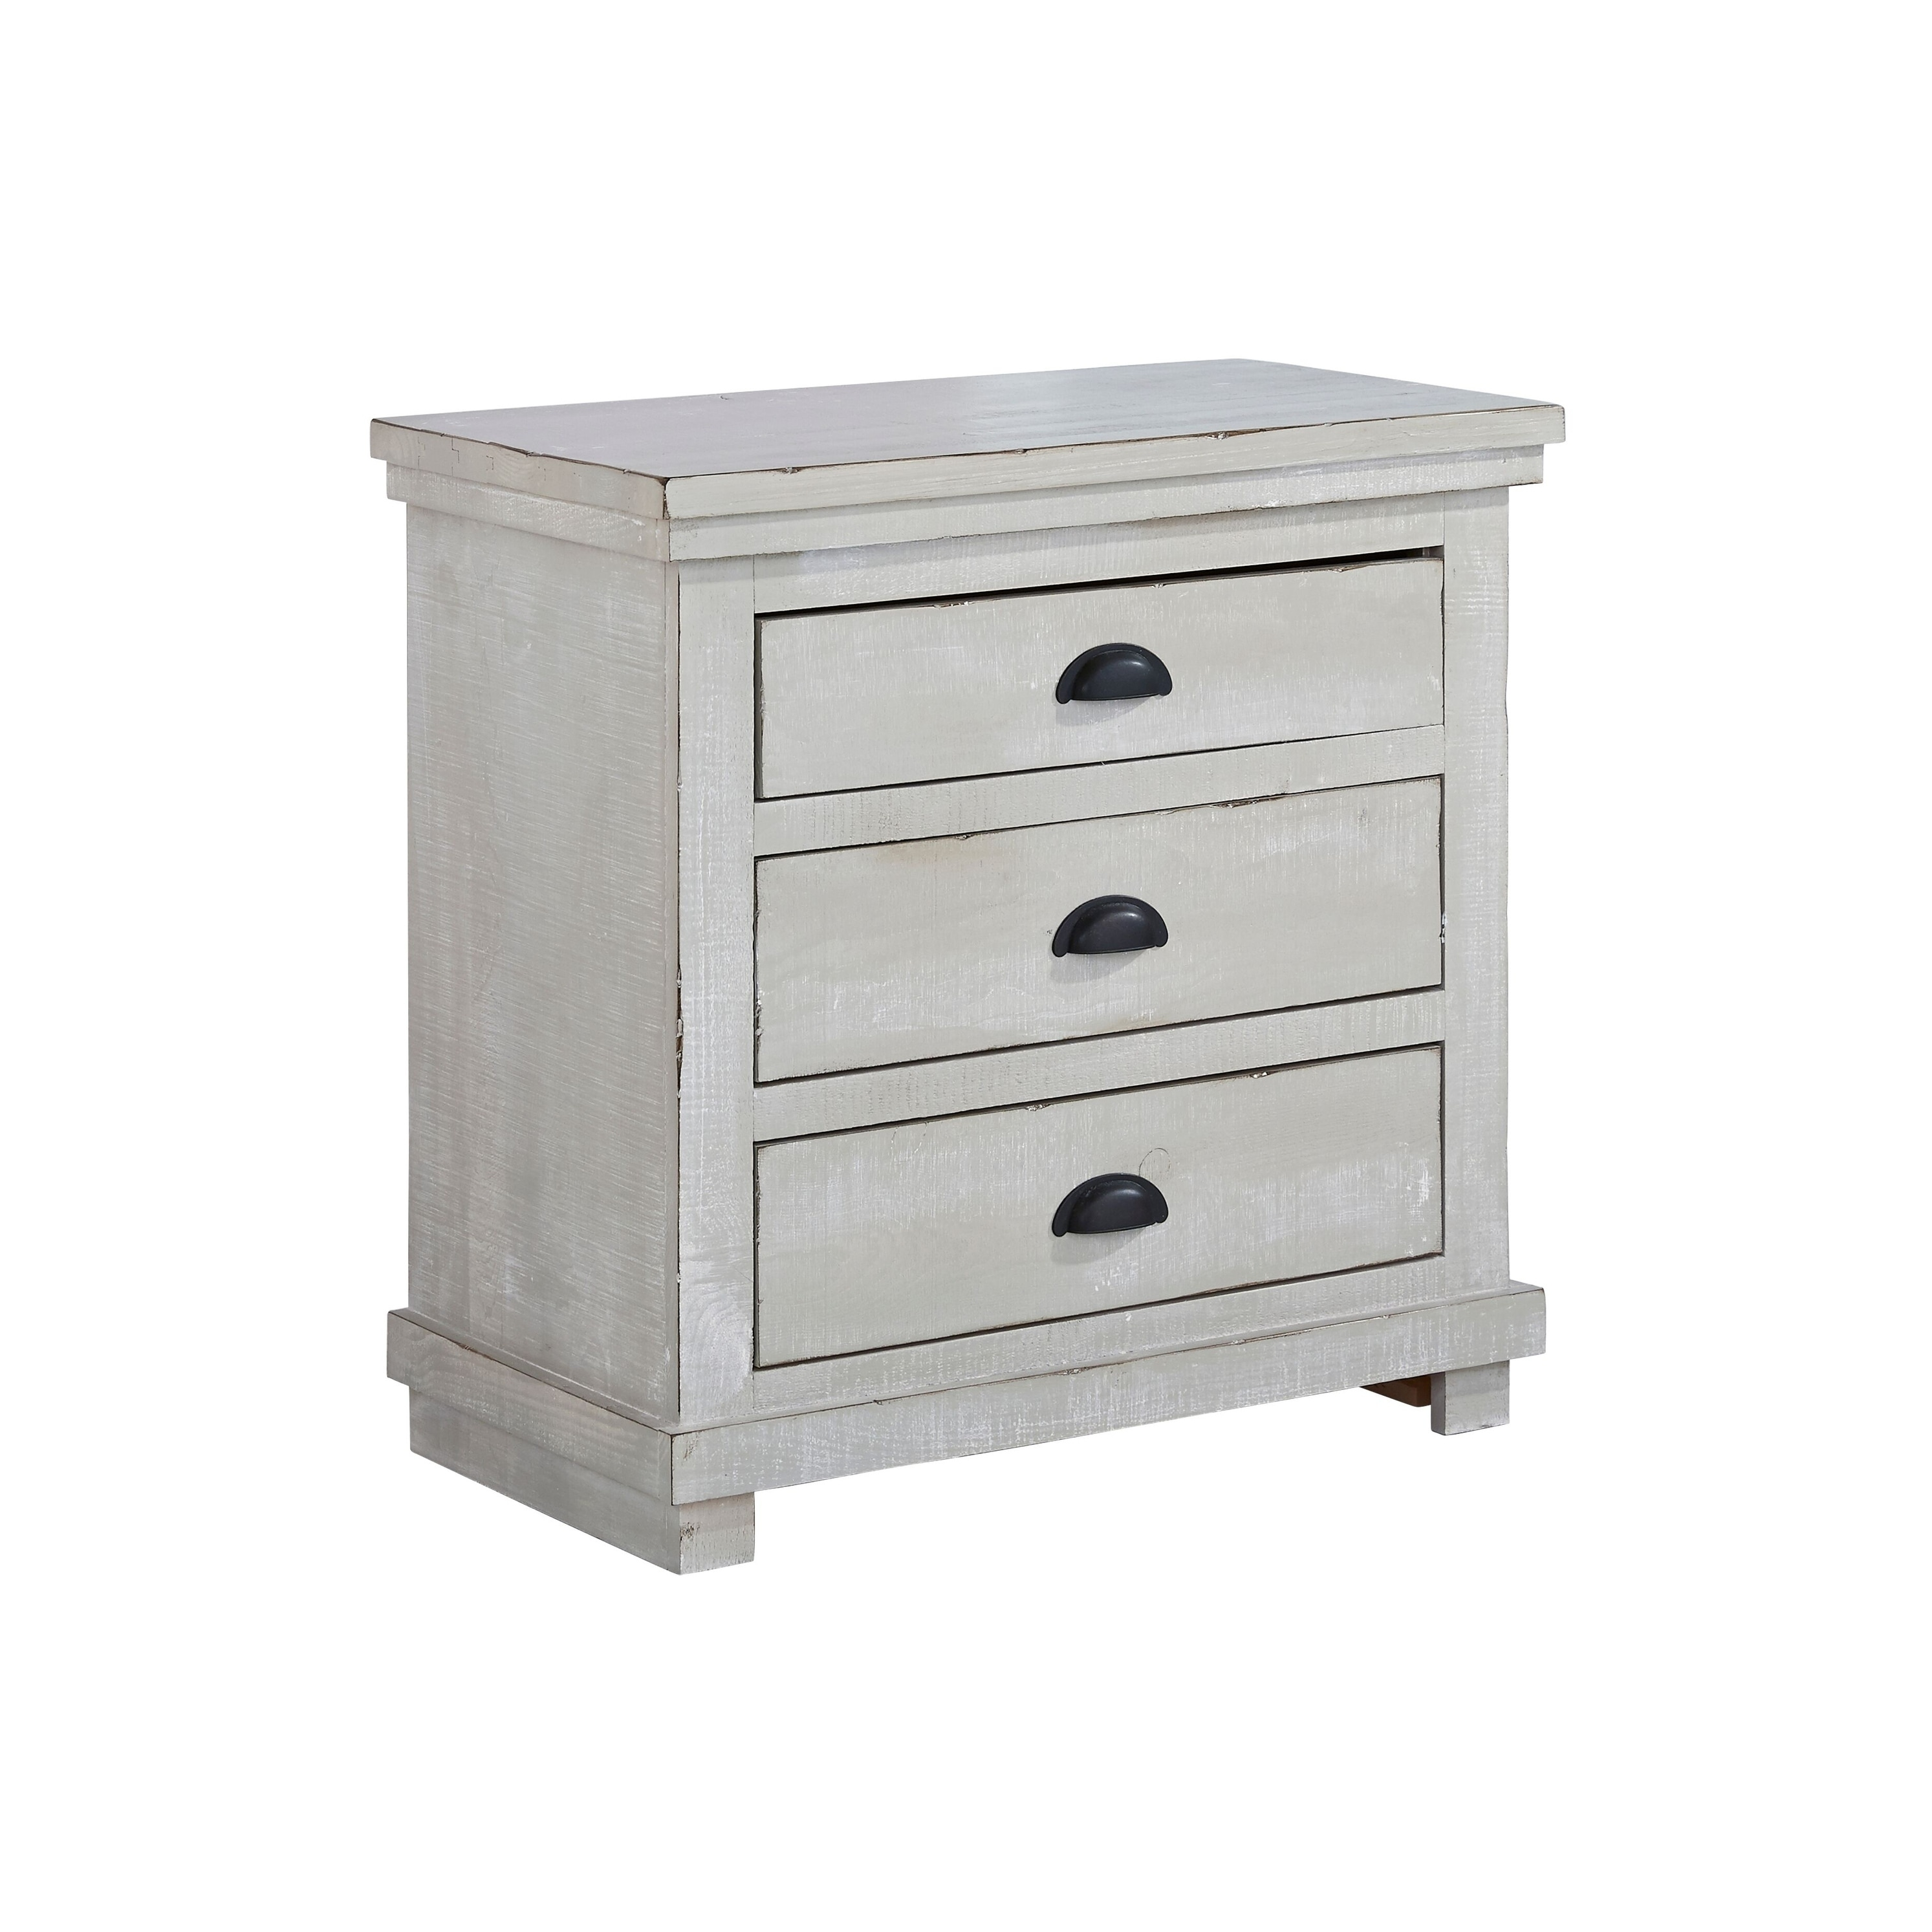 Progressive Willow Chalk Gray Nightstand